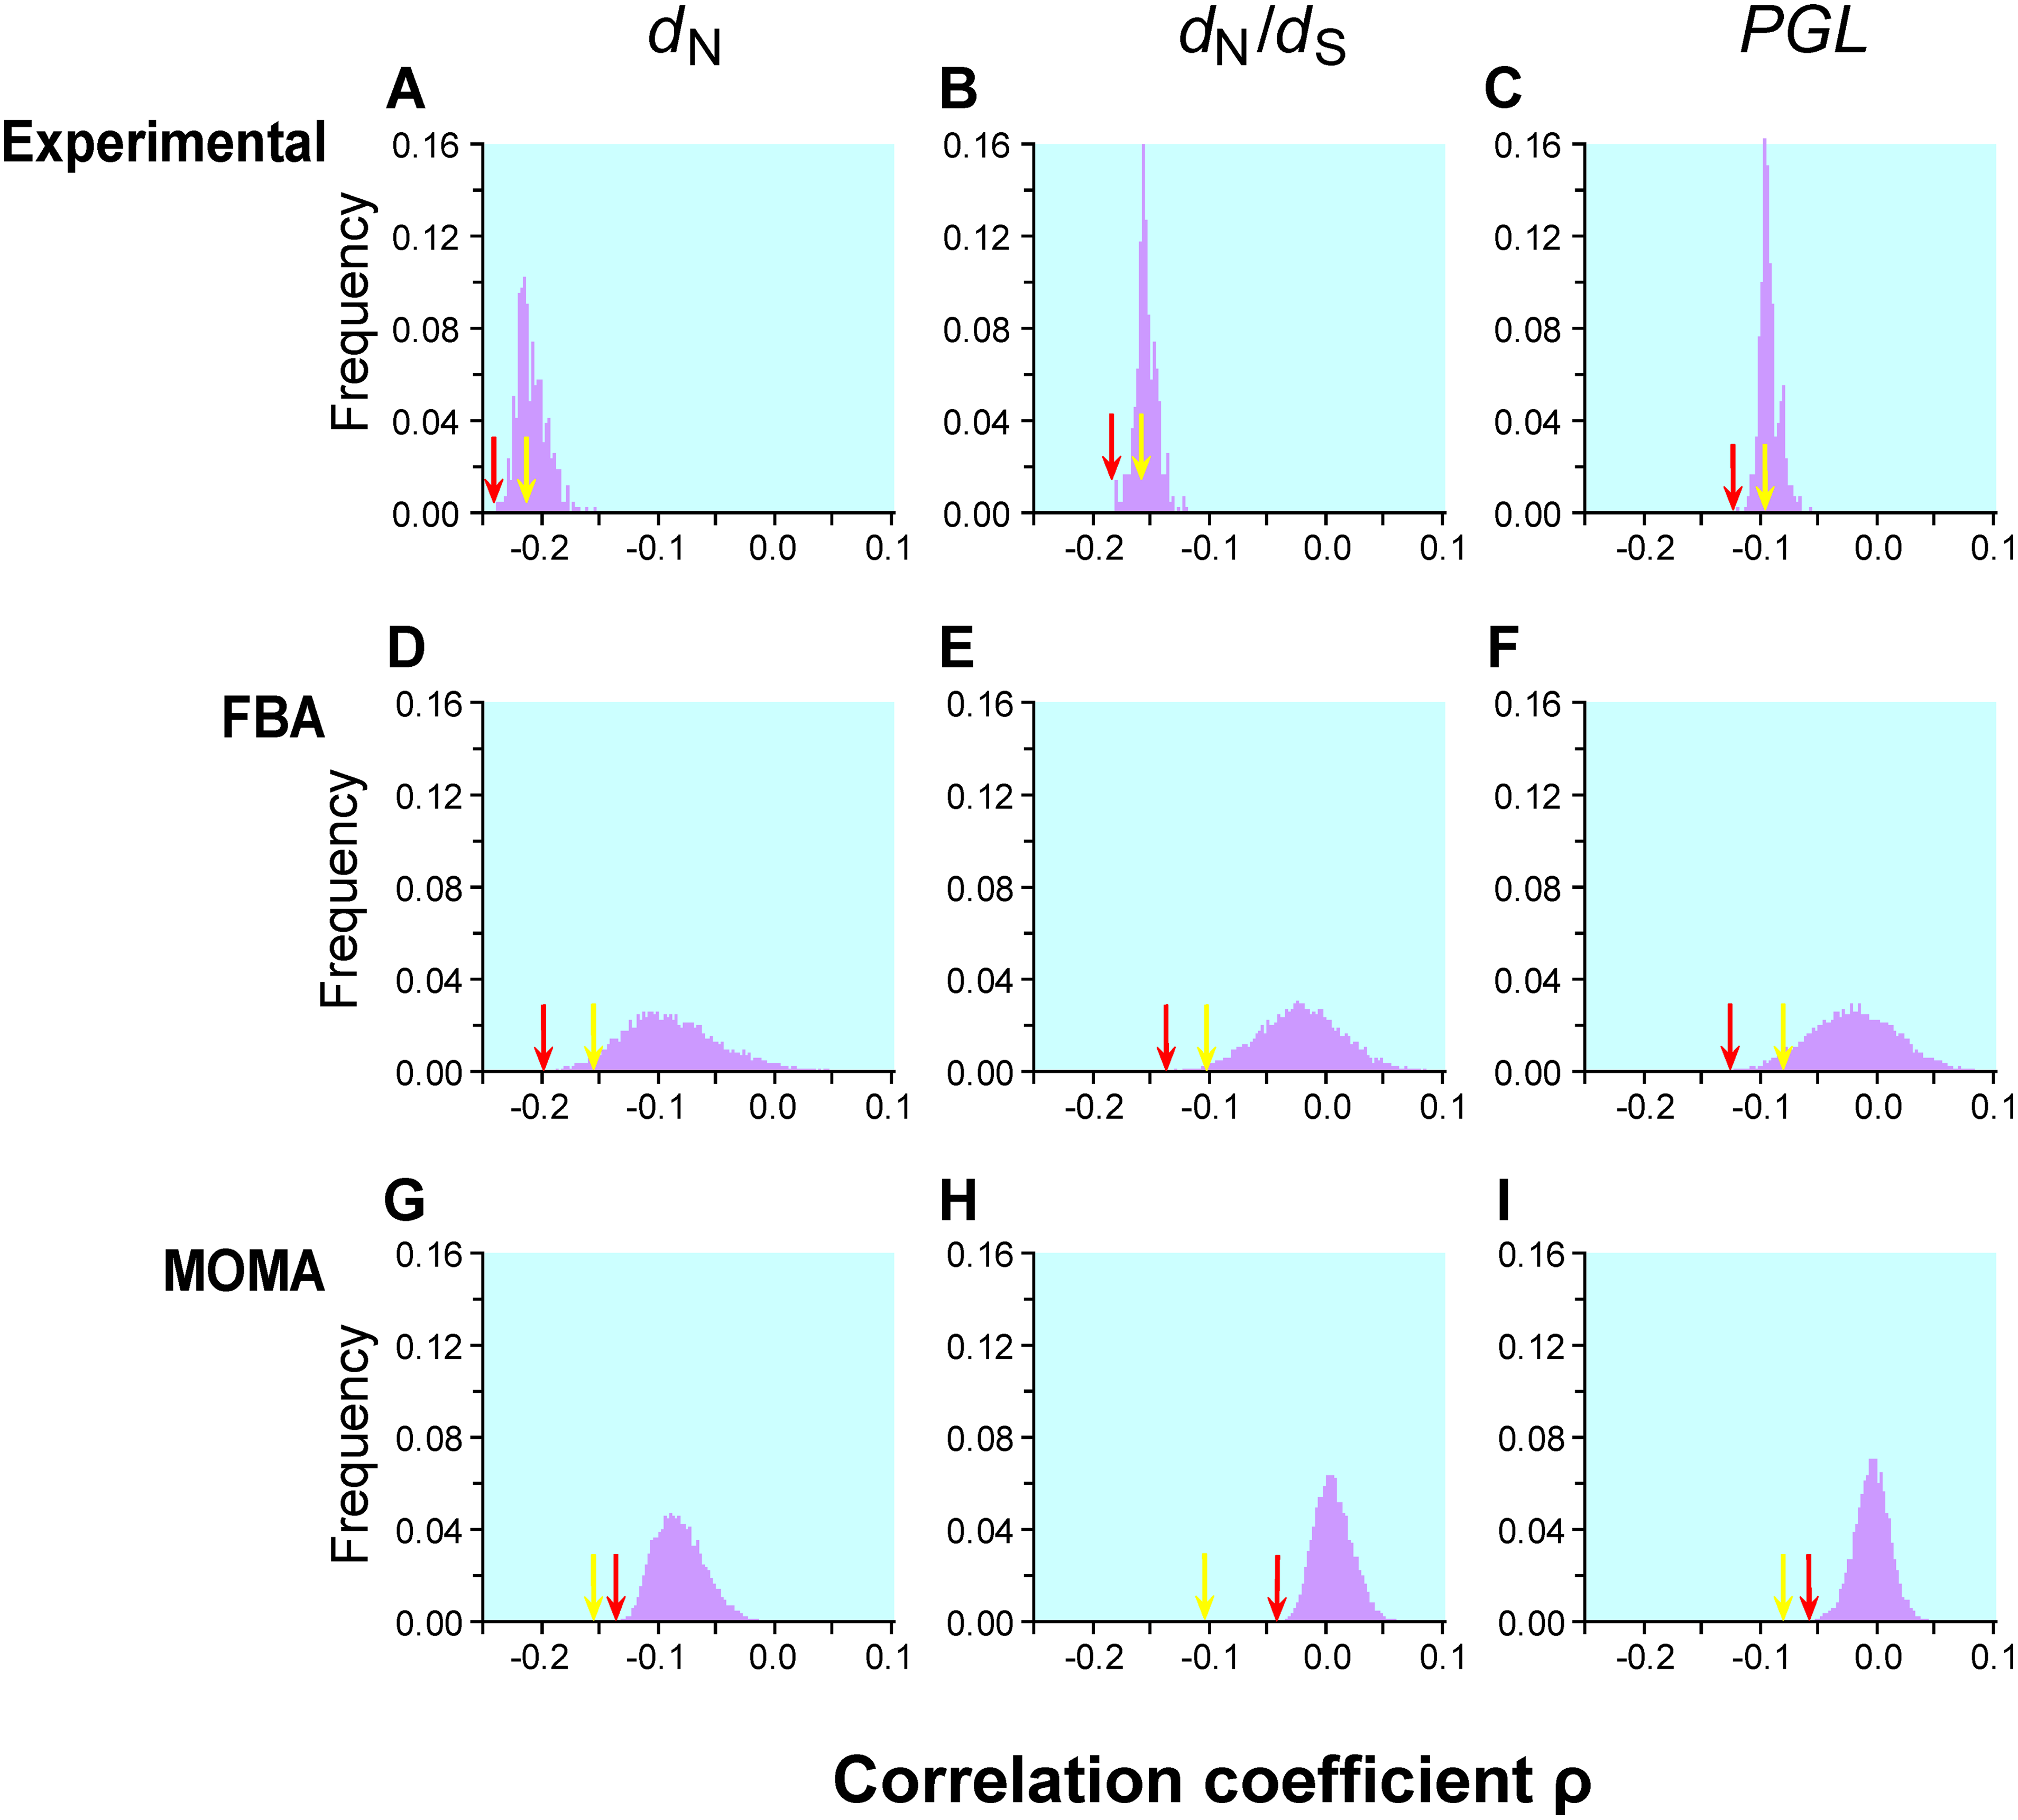 Frequency distributions of Spearman's rank correlation coefficient ρ between gene importance (i.e., fitness reduction upon gene deletion) and evolutionary rate across many conditions.